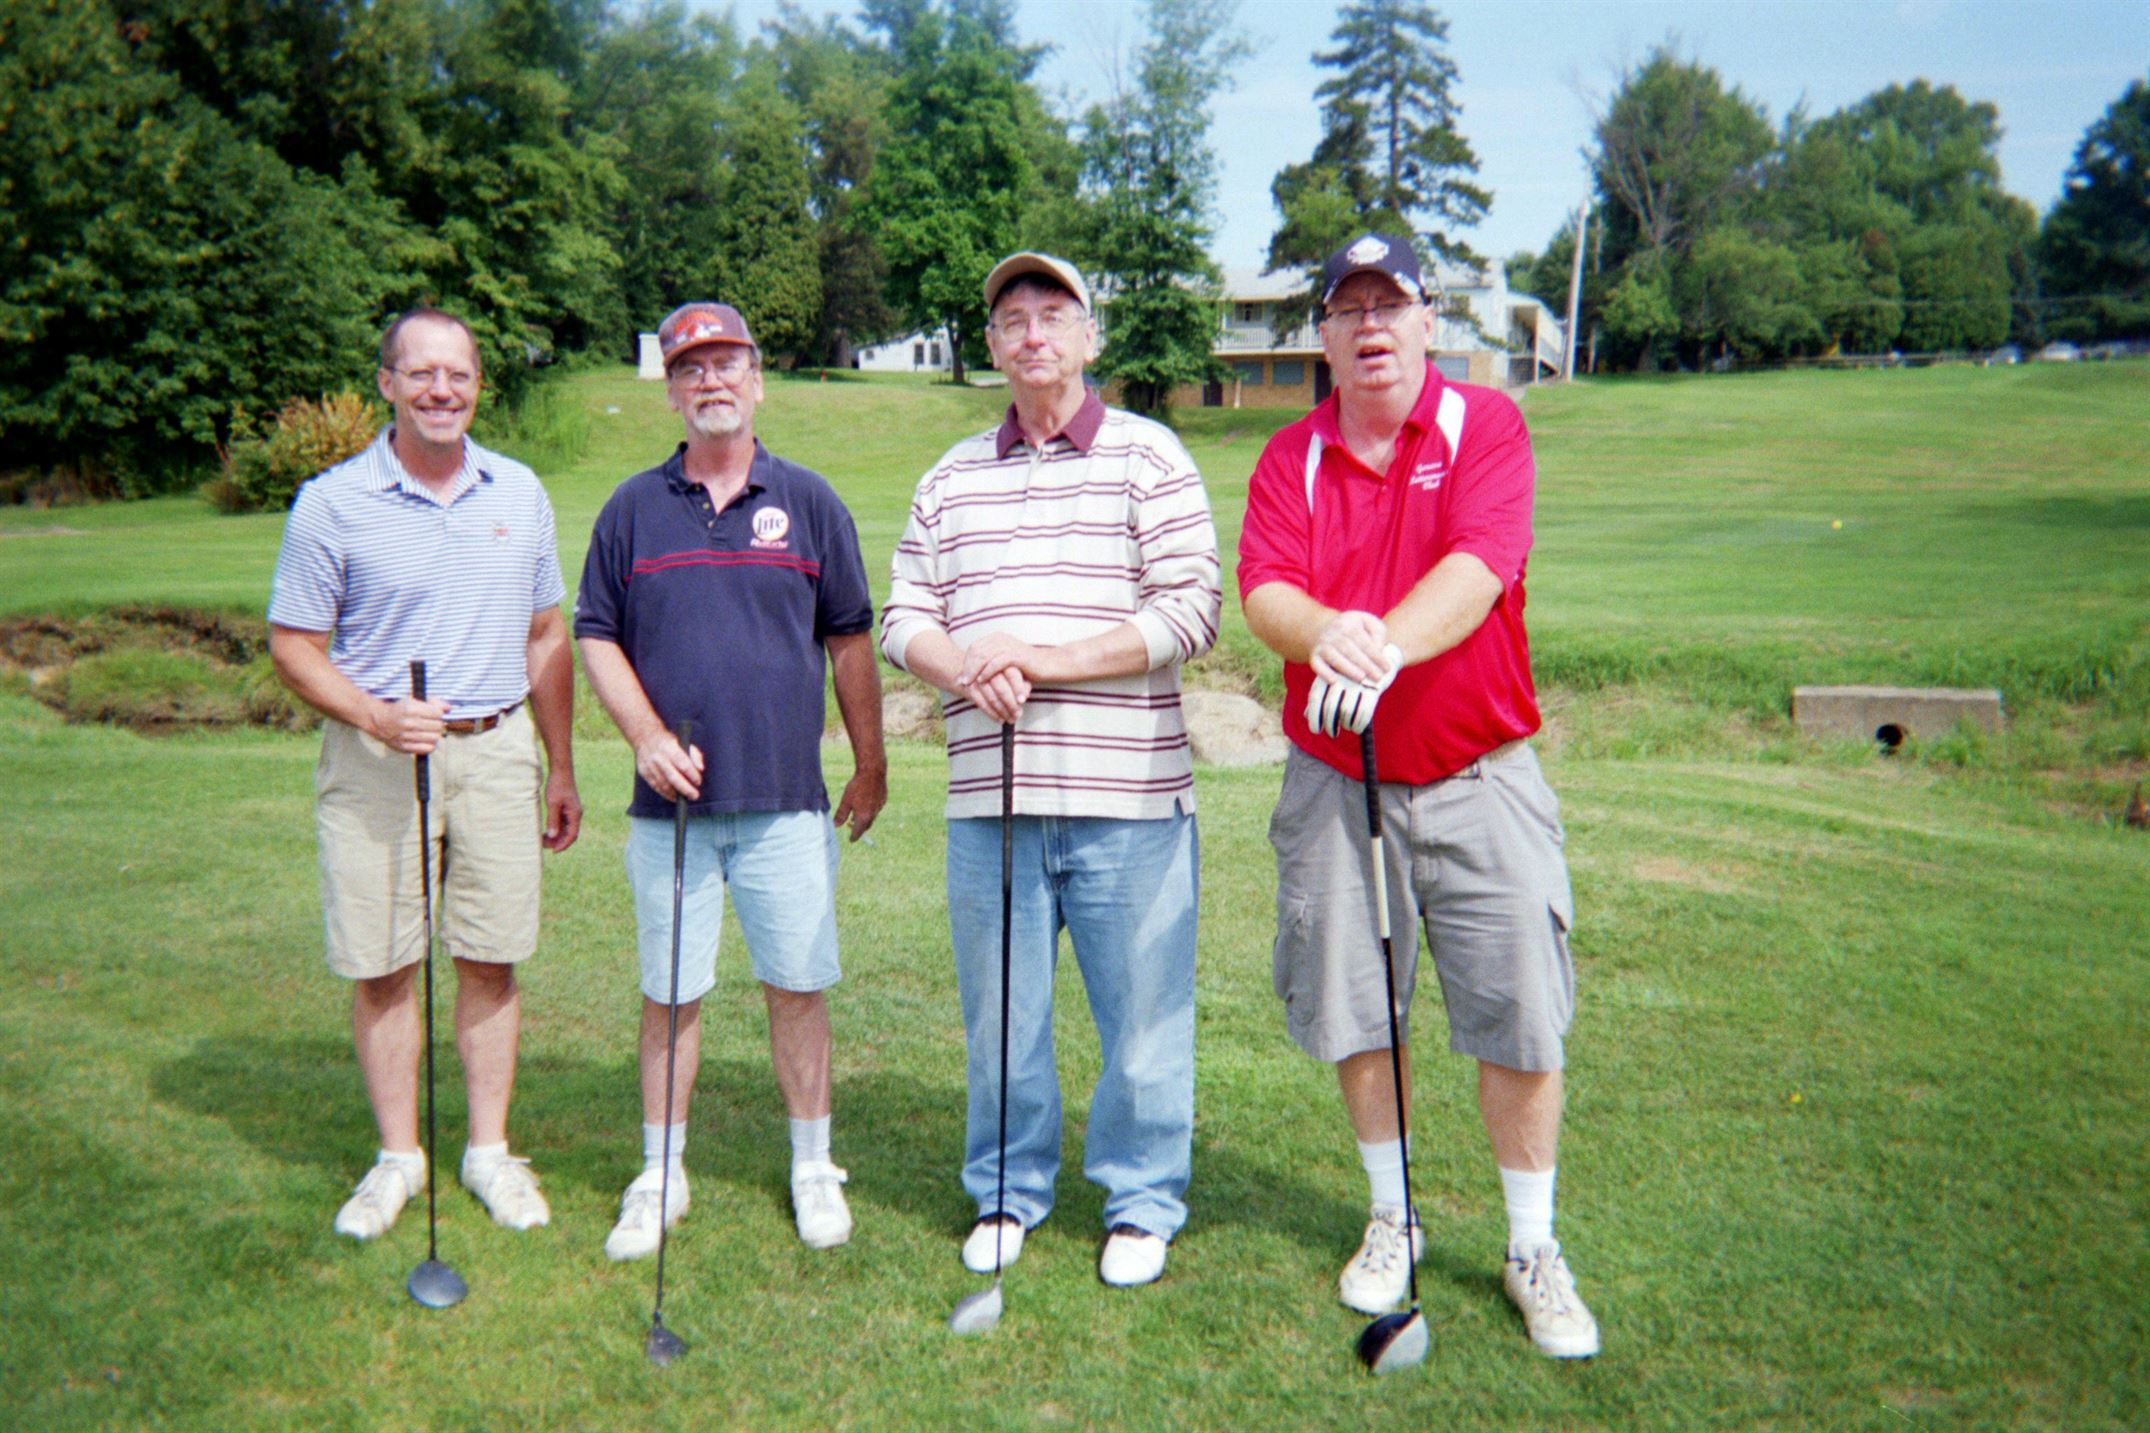 Doug Dean,Tim Shannon, James Rauckhorst, Shawn Shannon